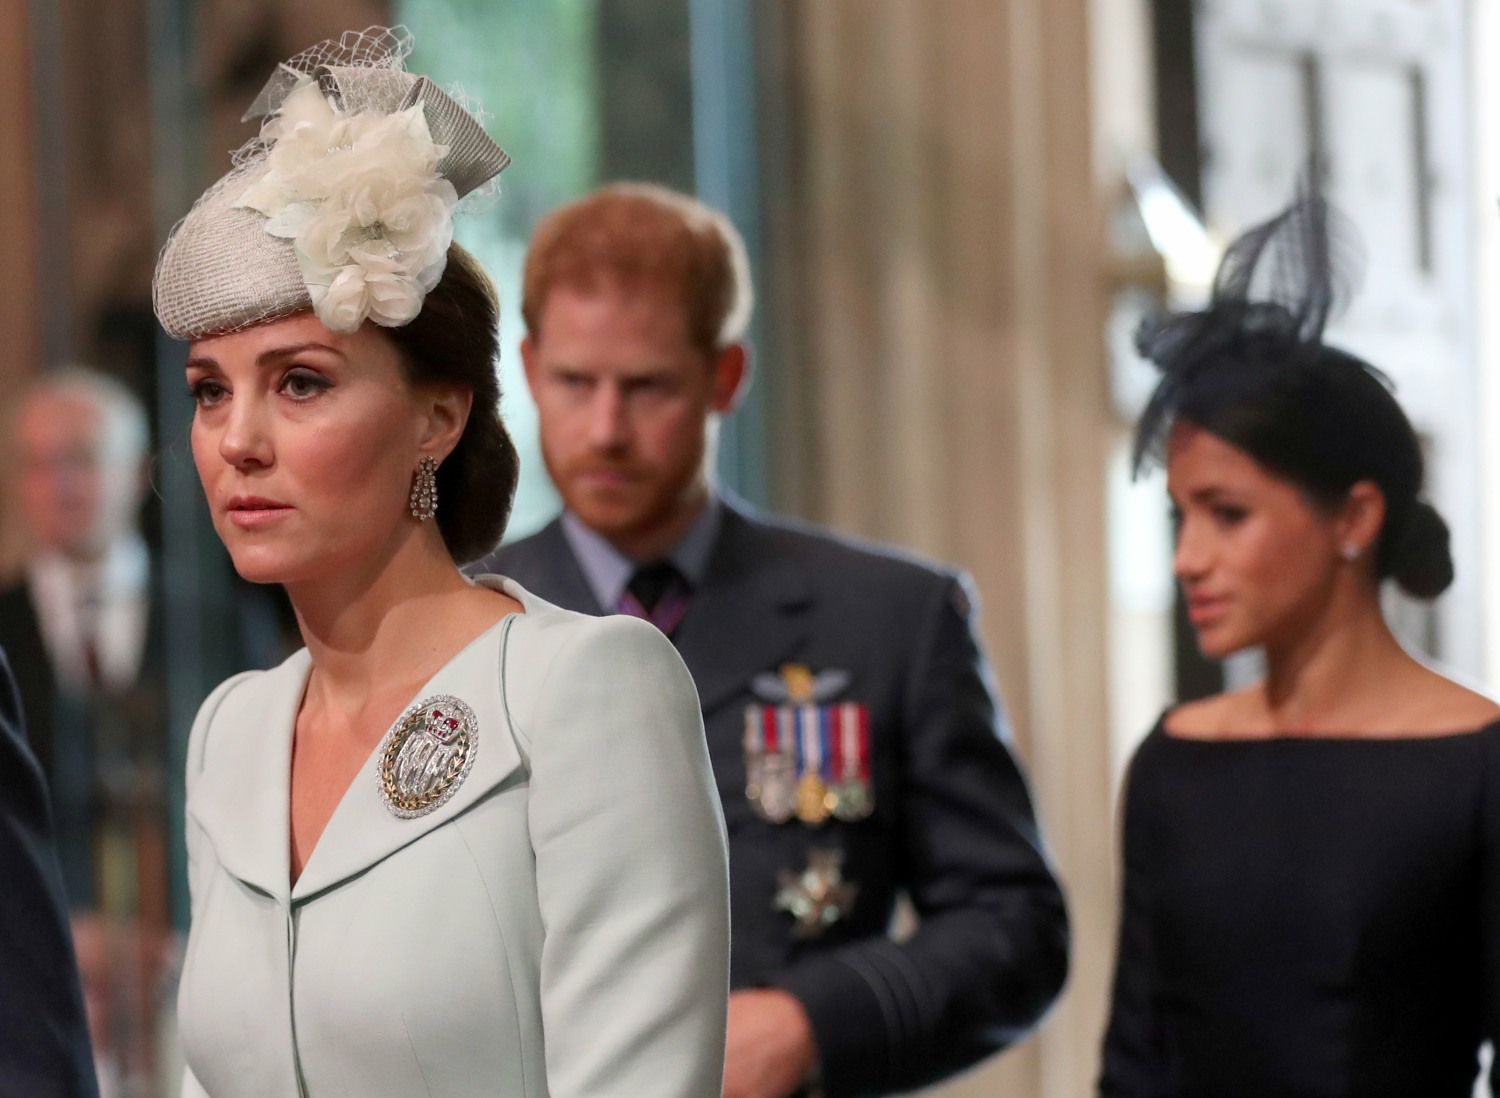 Britain's Prince Harry, his wife Meghan, the Duke and Duchess of Sussex, and Catherine, Duchess of Cambridge arrive at Westminster Abbey for a service to mark the centenary of the Royal Air Force